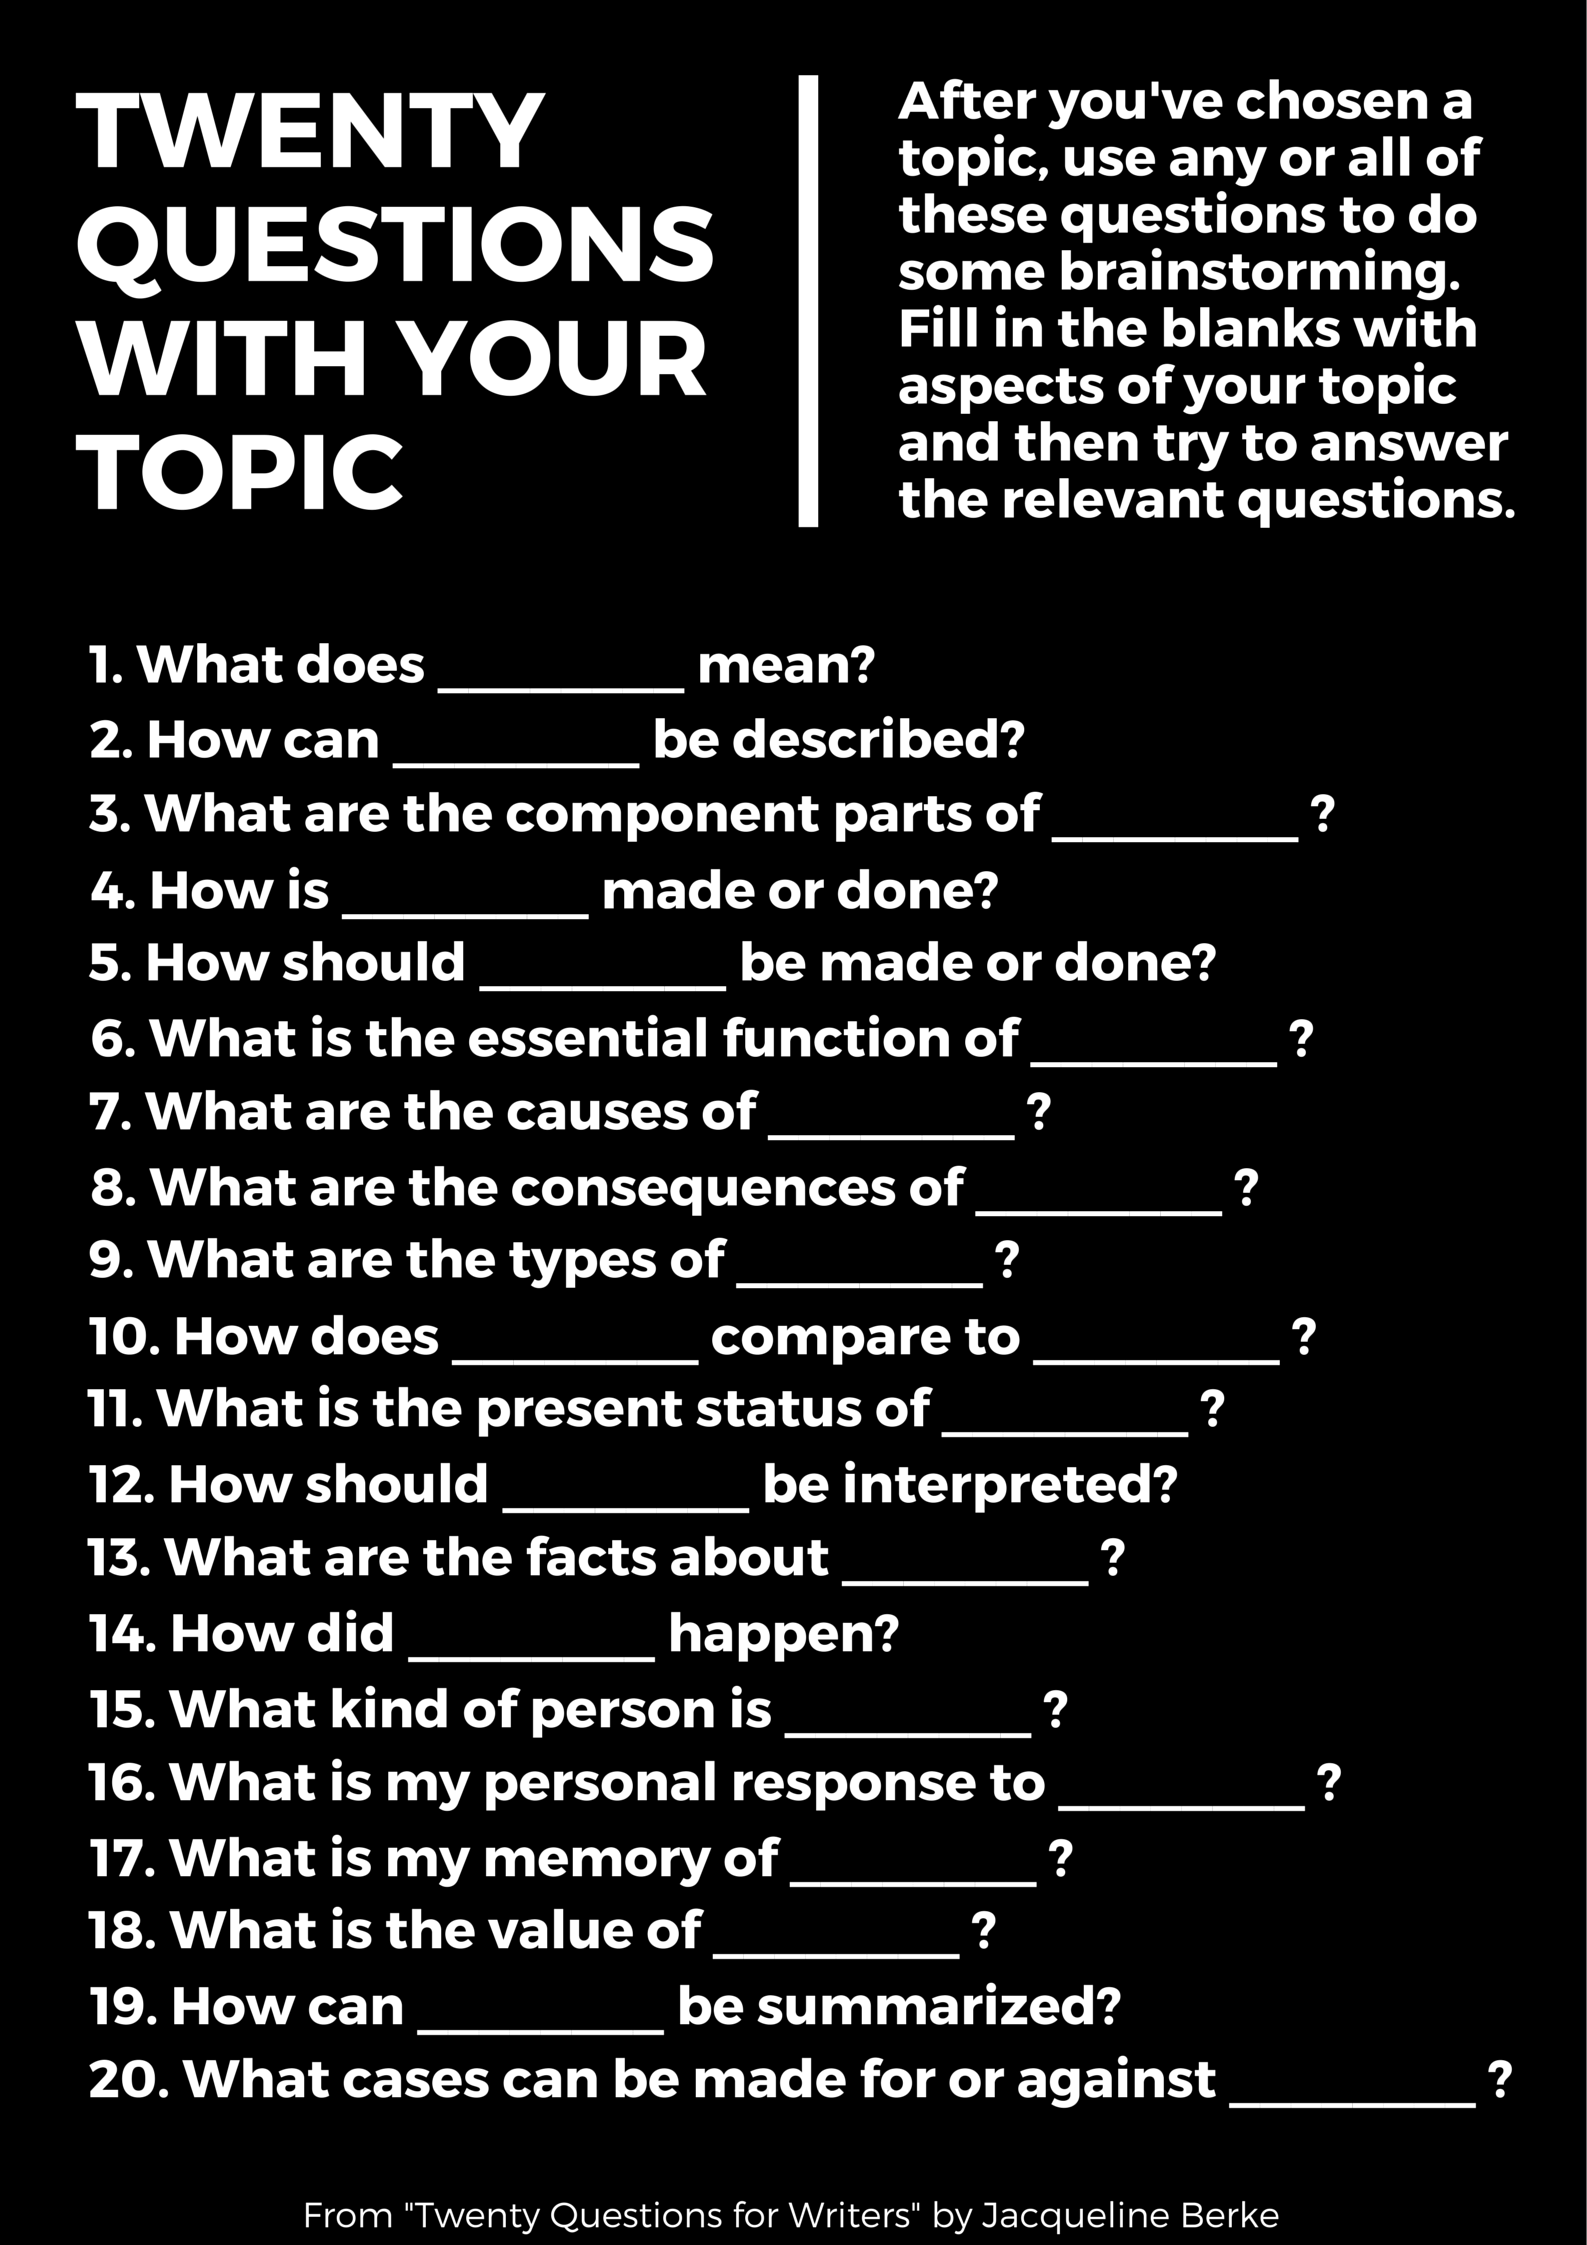 Twenty Questions for Developing Your Topic | Western Libraries